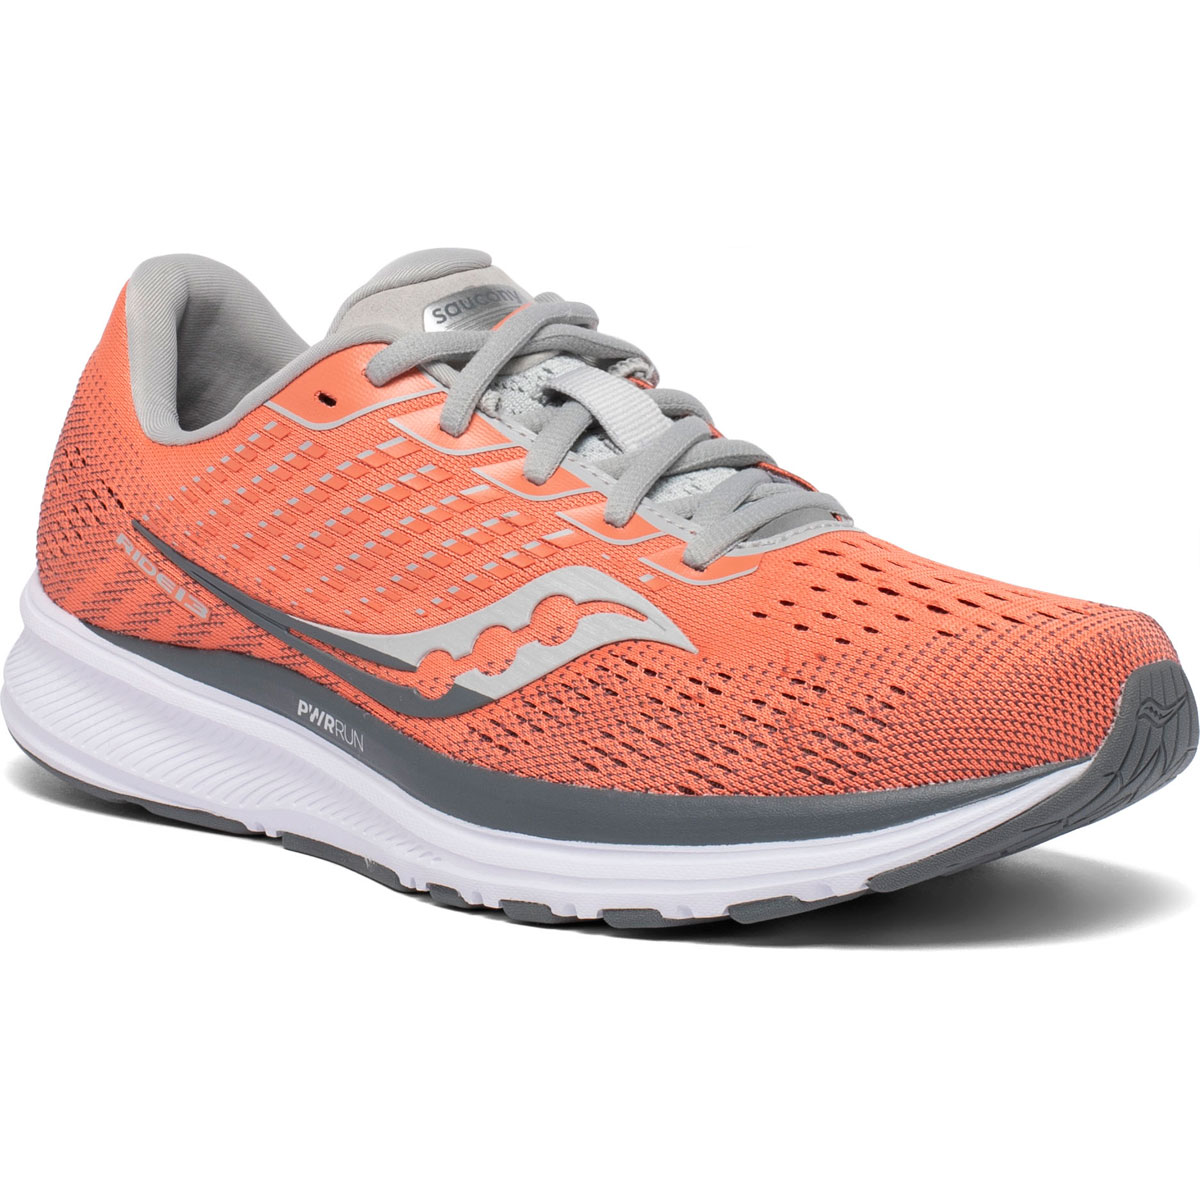 Women's Saucony Ride 13 Running Shoe - Color: Coral/Alloy - Size: 5 - Width: Regular, Coral/Alloy, large, image 5